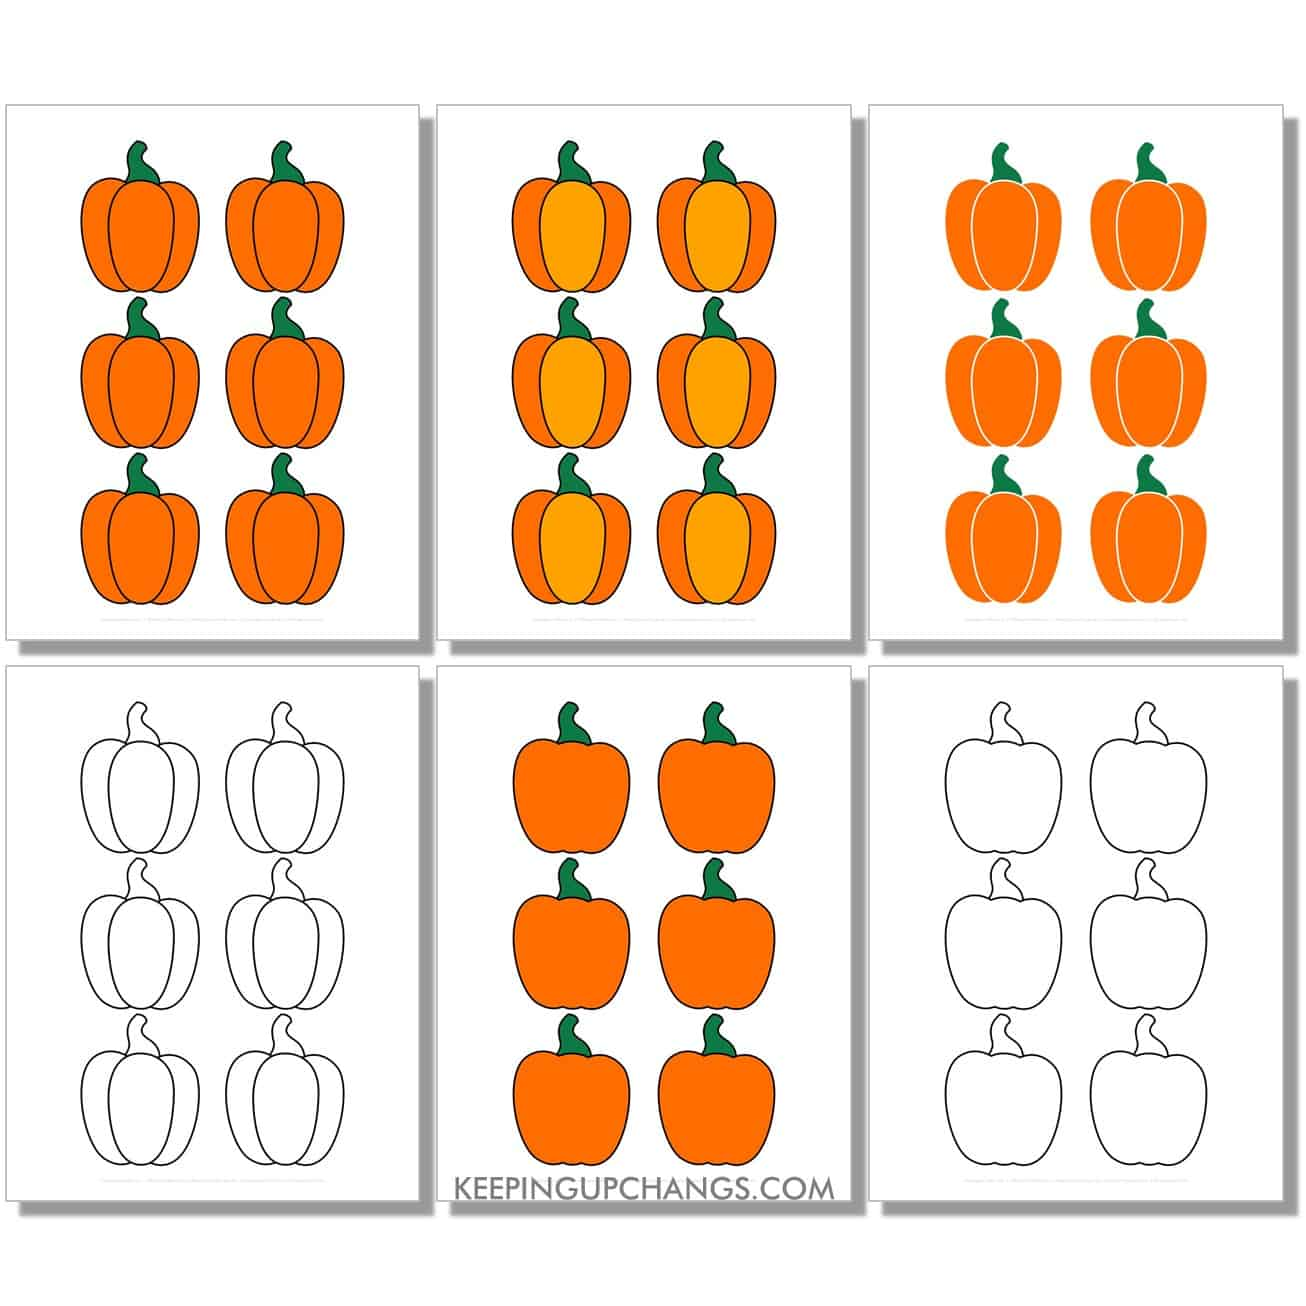 free mini small pumpkin in color, black and white, silhouette, 6 to a page.